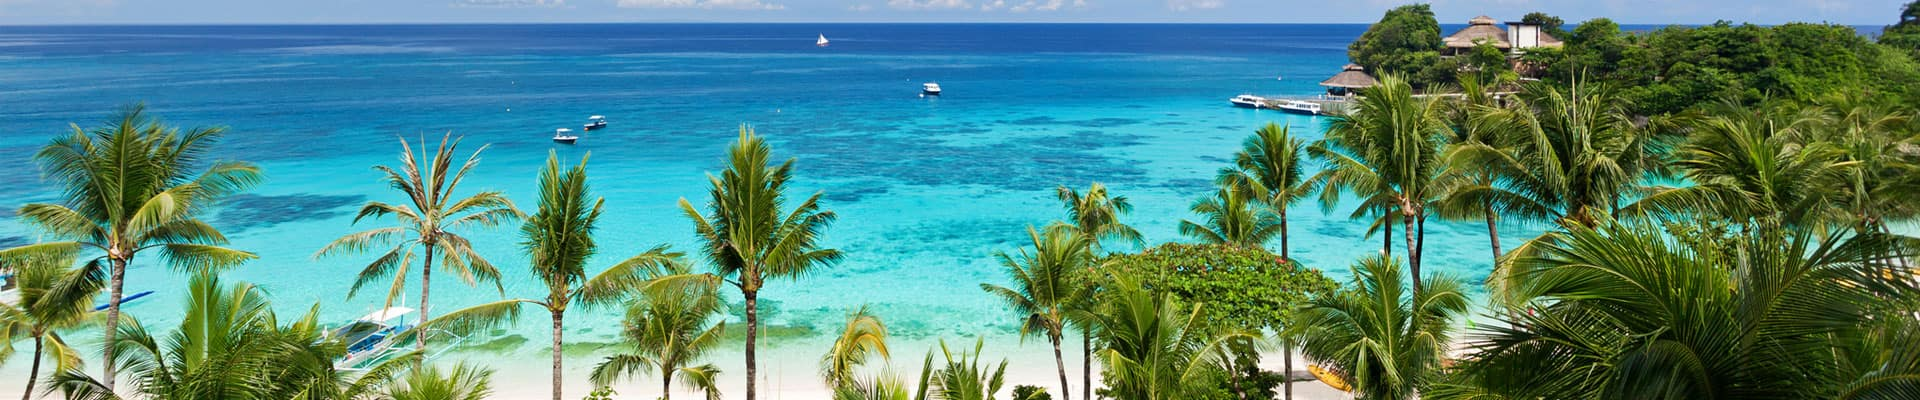 4-day-bahamas-cruises